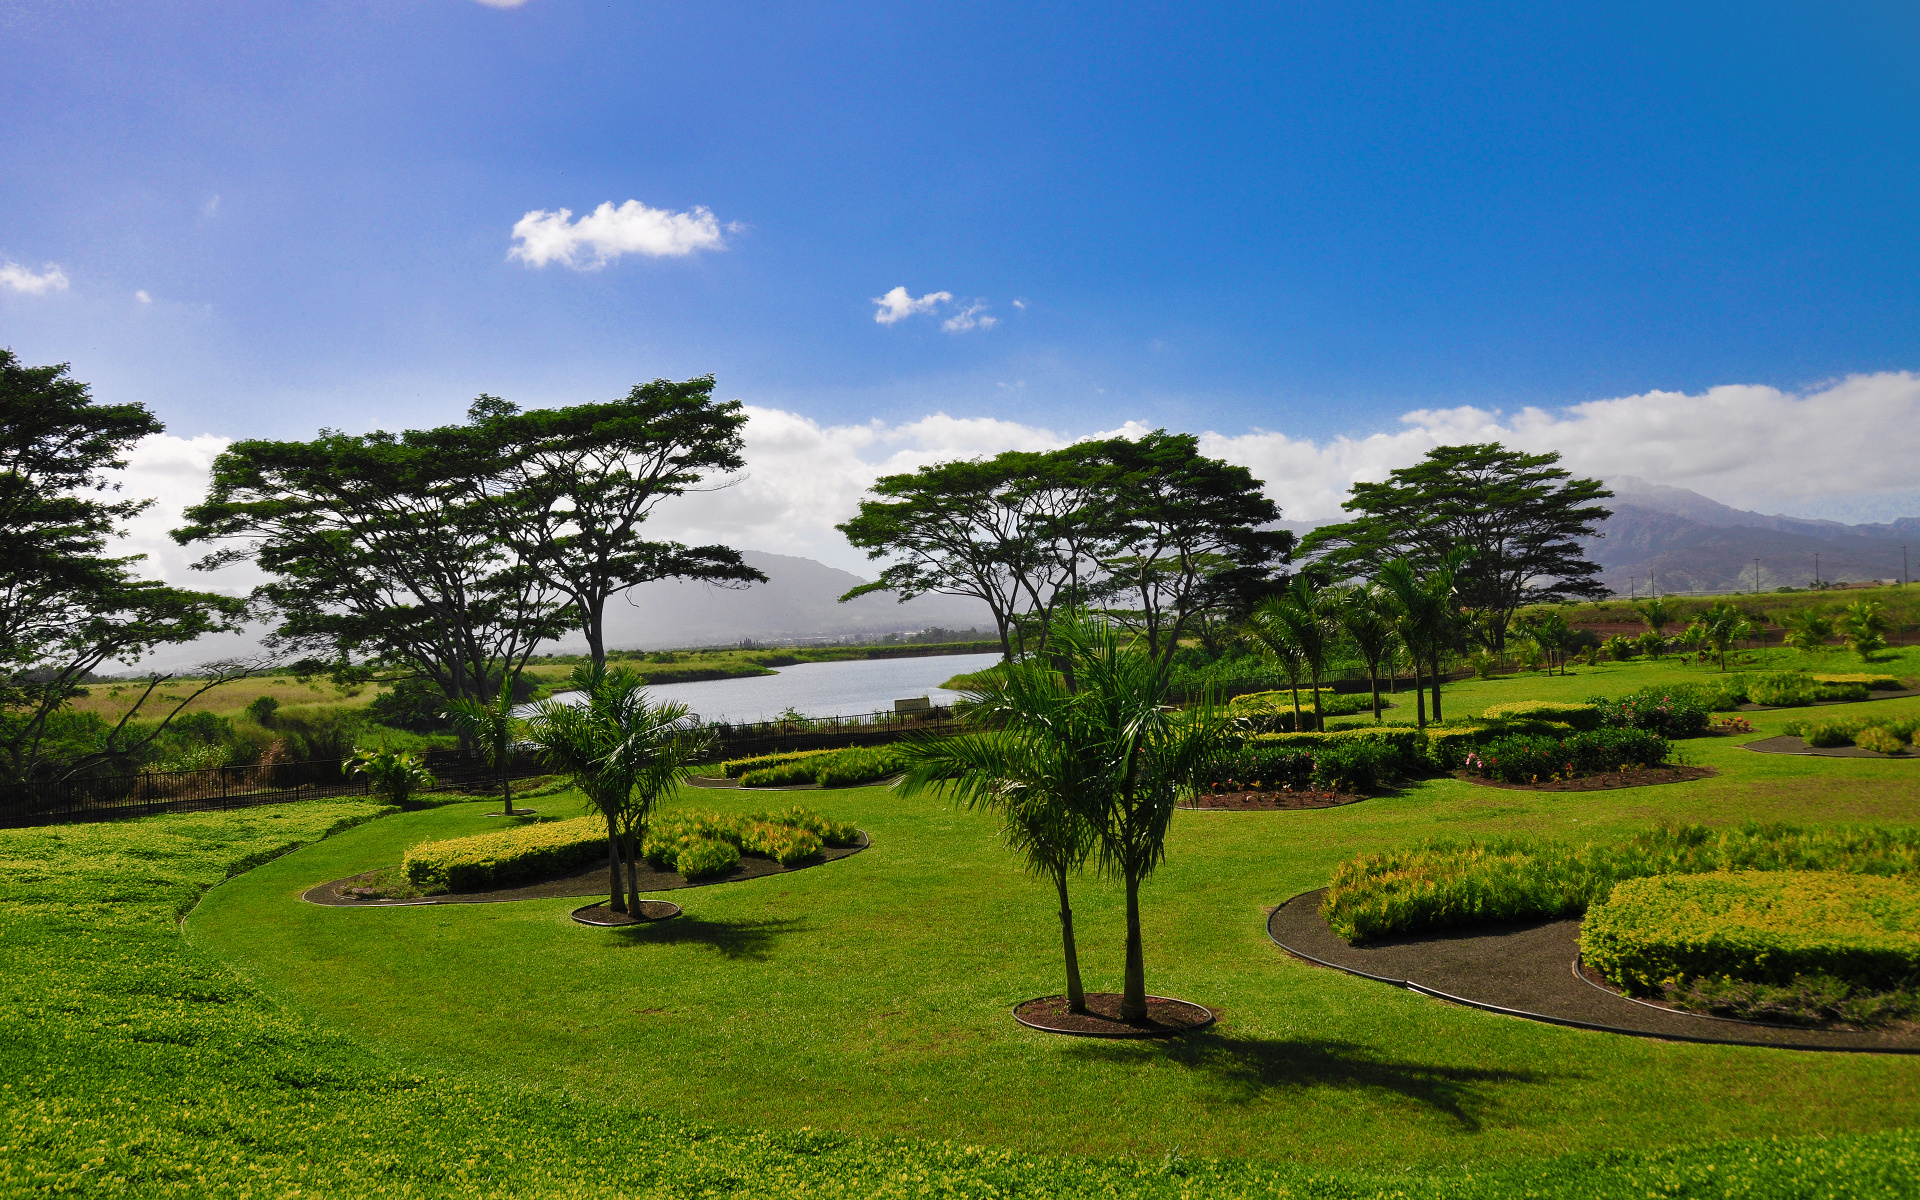 Park on plantation site hd wallpaper hd wallpapers - Wallpapers sites list ...